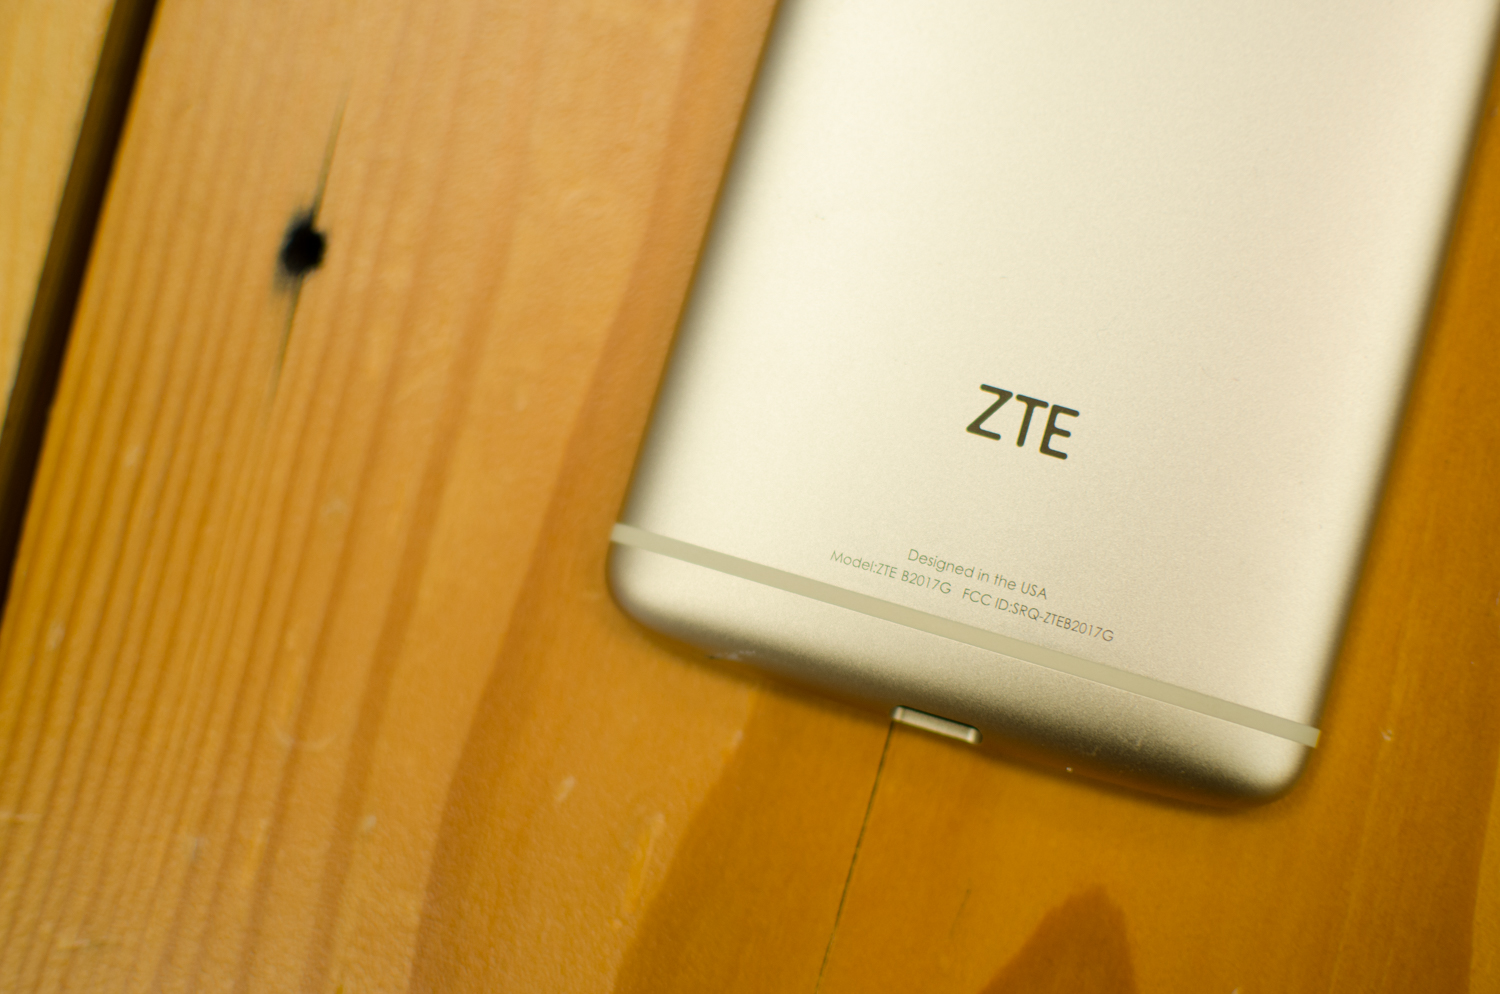 ZTE launching a gigabit smartphone at Mobile World Congress